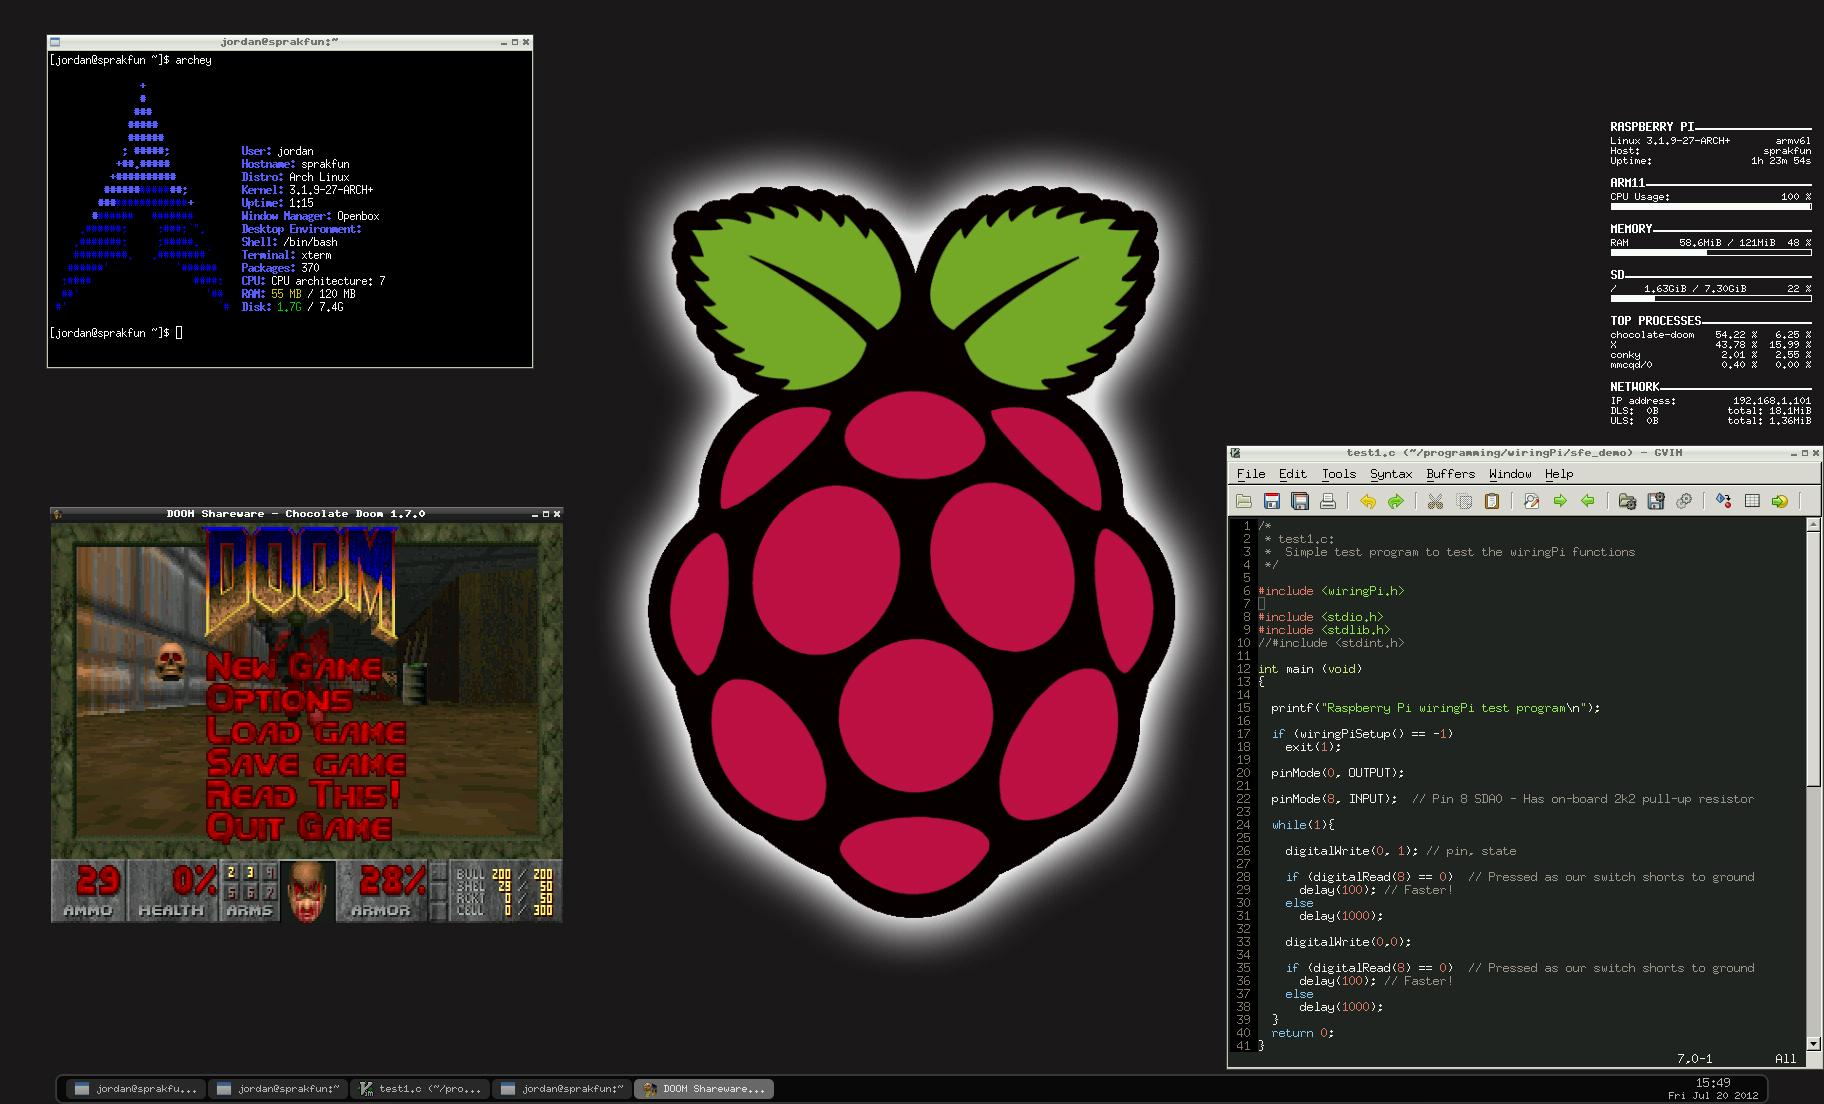 Raspberry pi 3 arch linux download